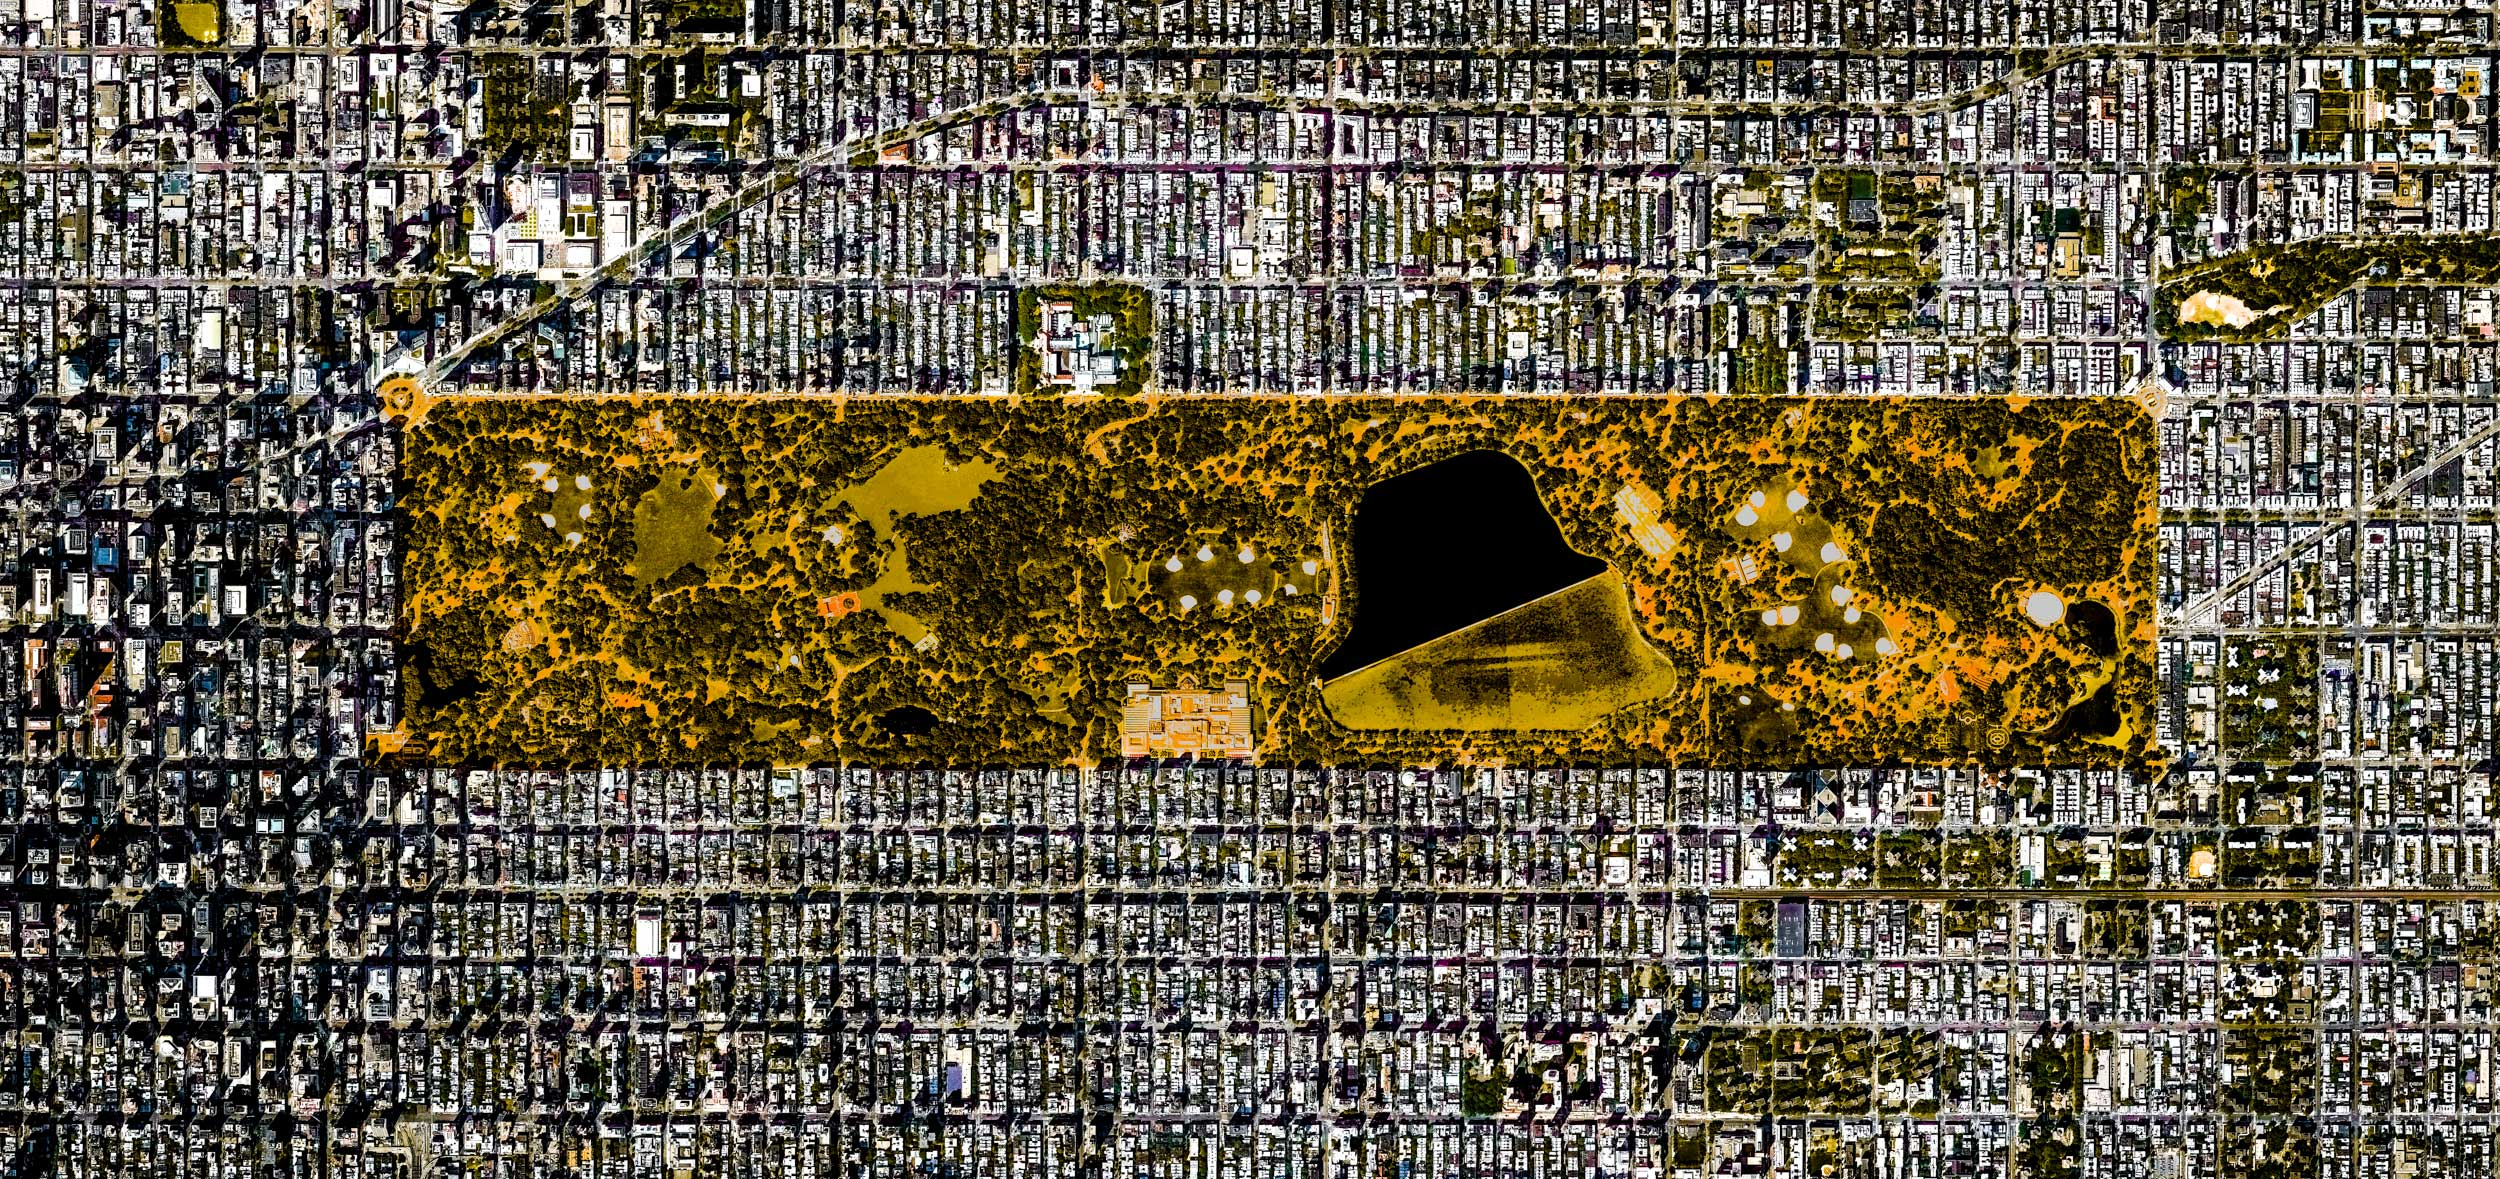 Central-Park-ULTRADISTANCIA-©Federico-Winer.jpg